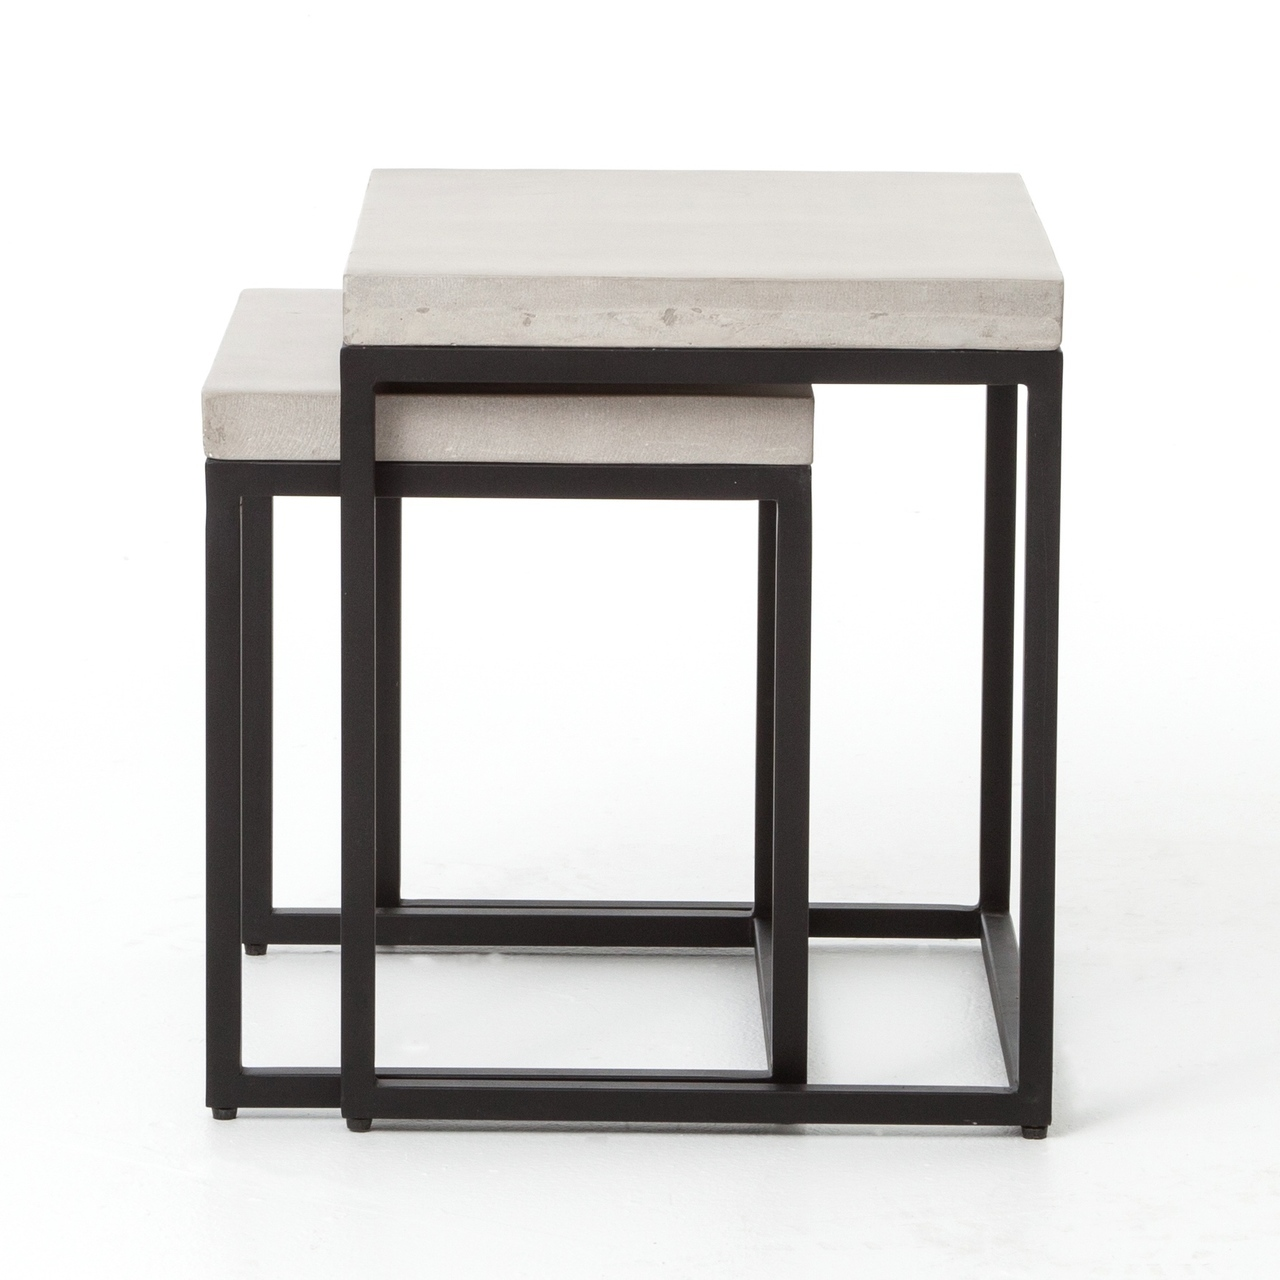 maximus indoor outdoor nesting side tables natural concrete vcns sid table plastic wicker glass with shelf white and gold console pier one dining room small patio furniture sets